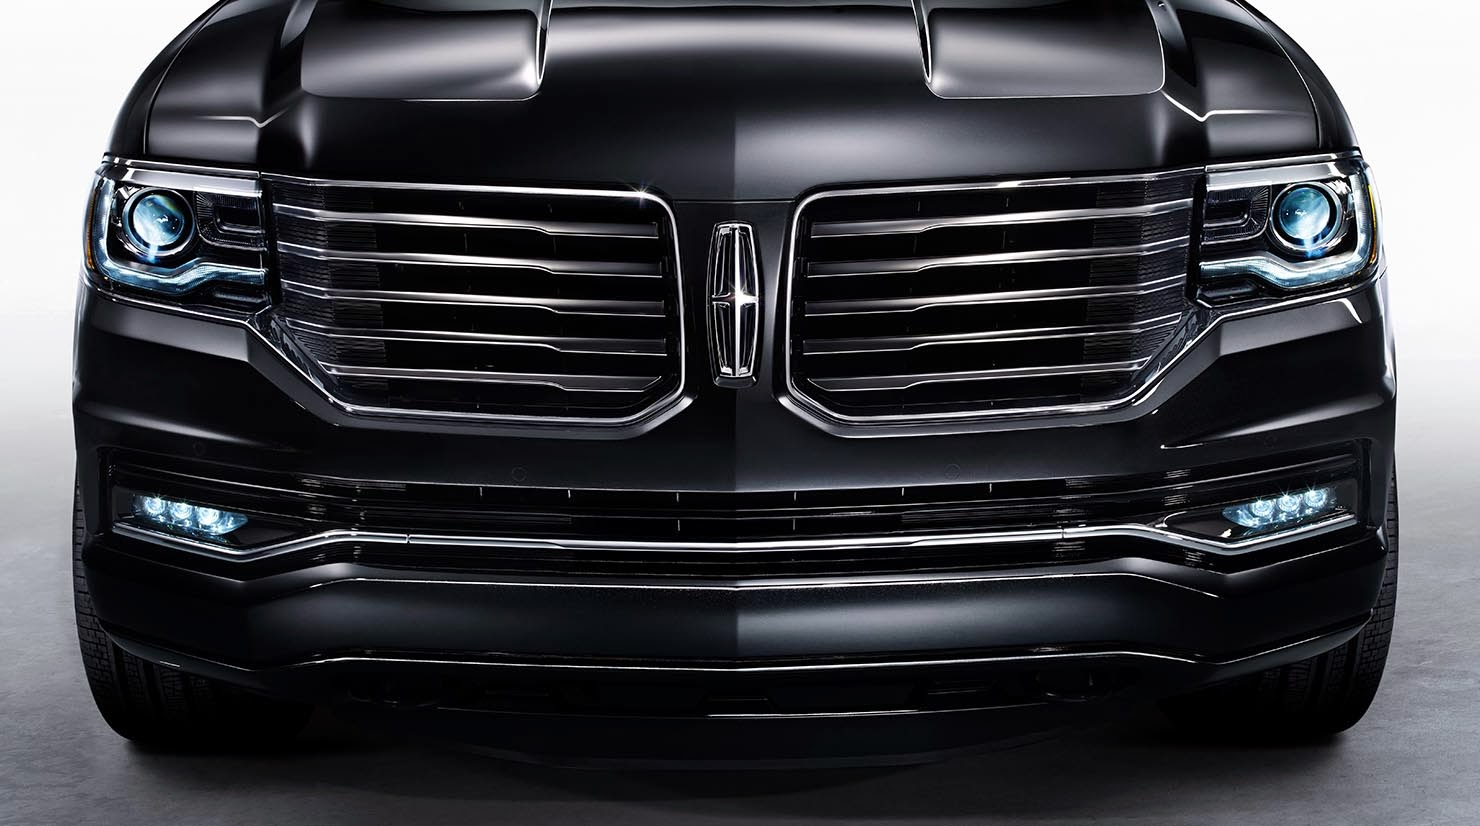 2015 Lincoln Navigator Redesign - Viewing Gallery